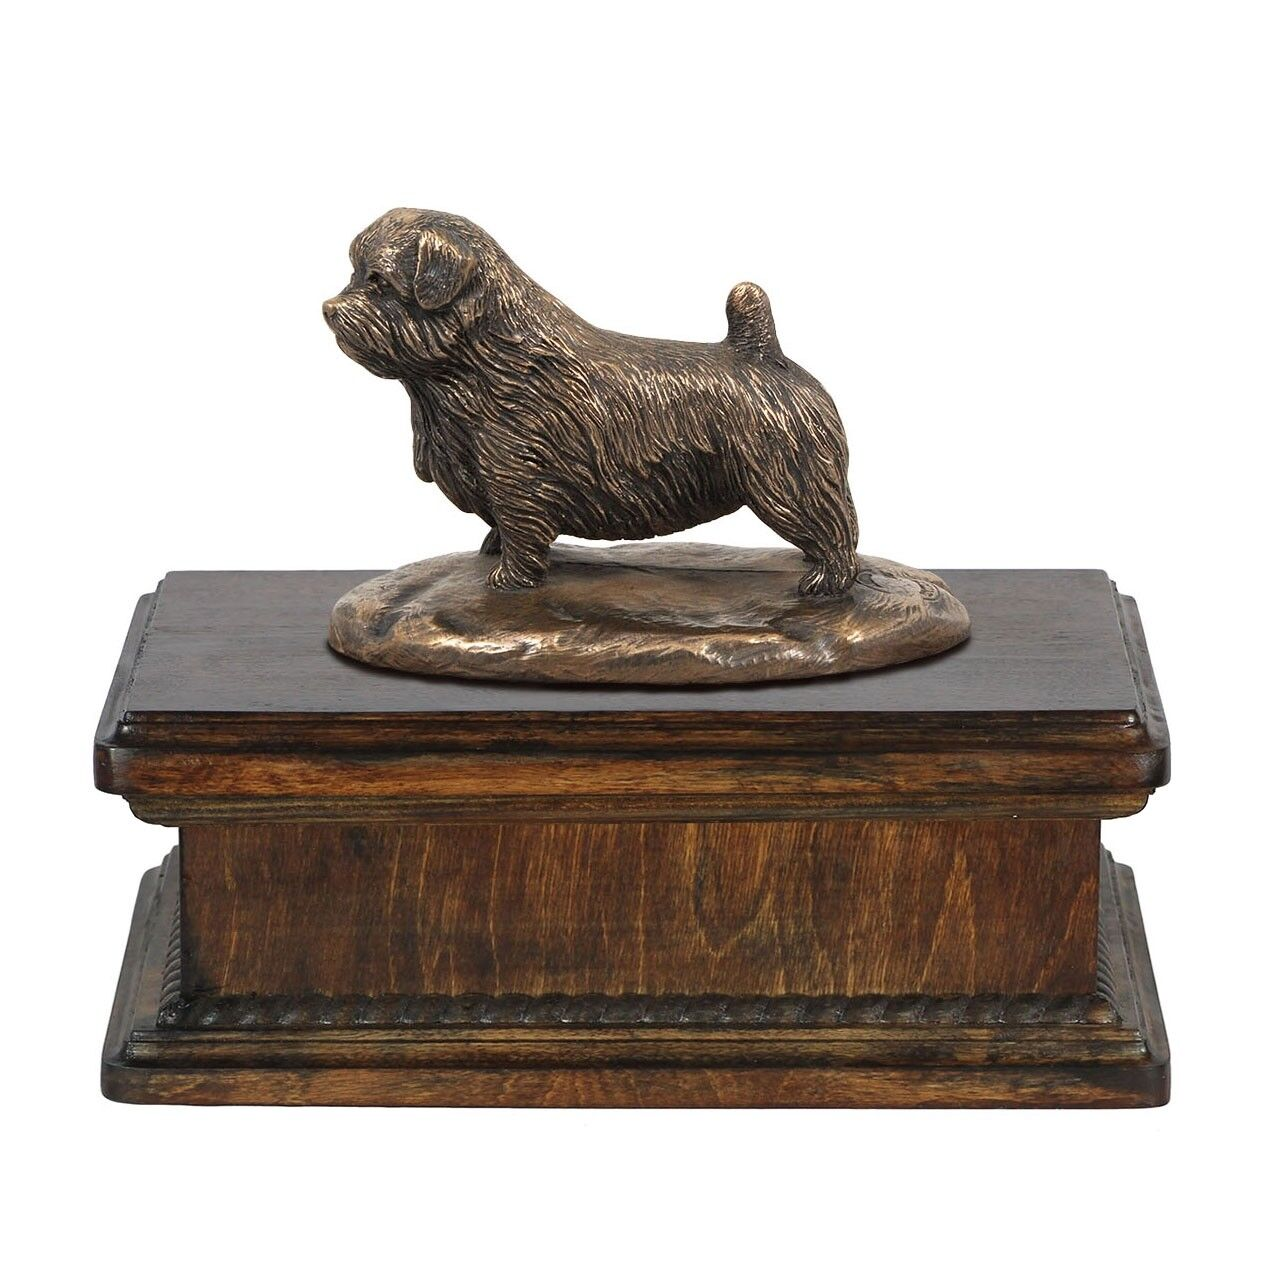 Norfolk Terrier - exclusive urn with dog statue, High Quality, Art Dog